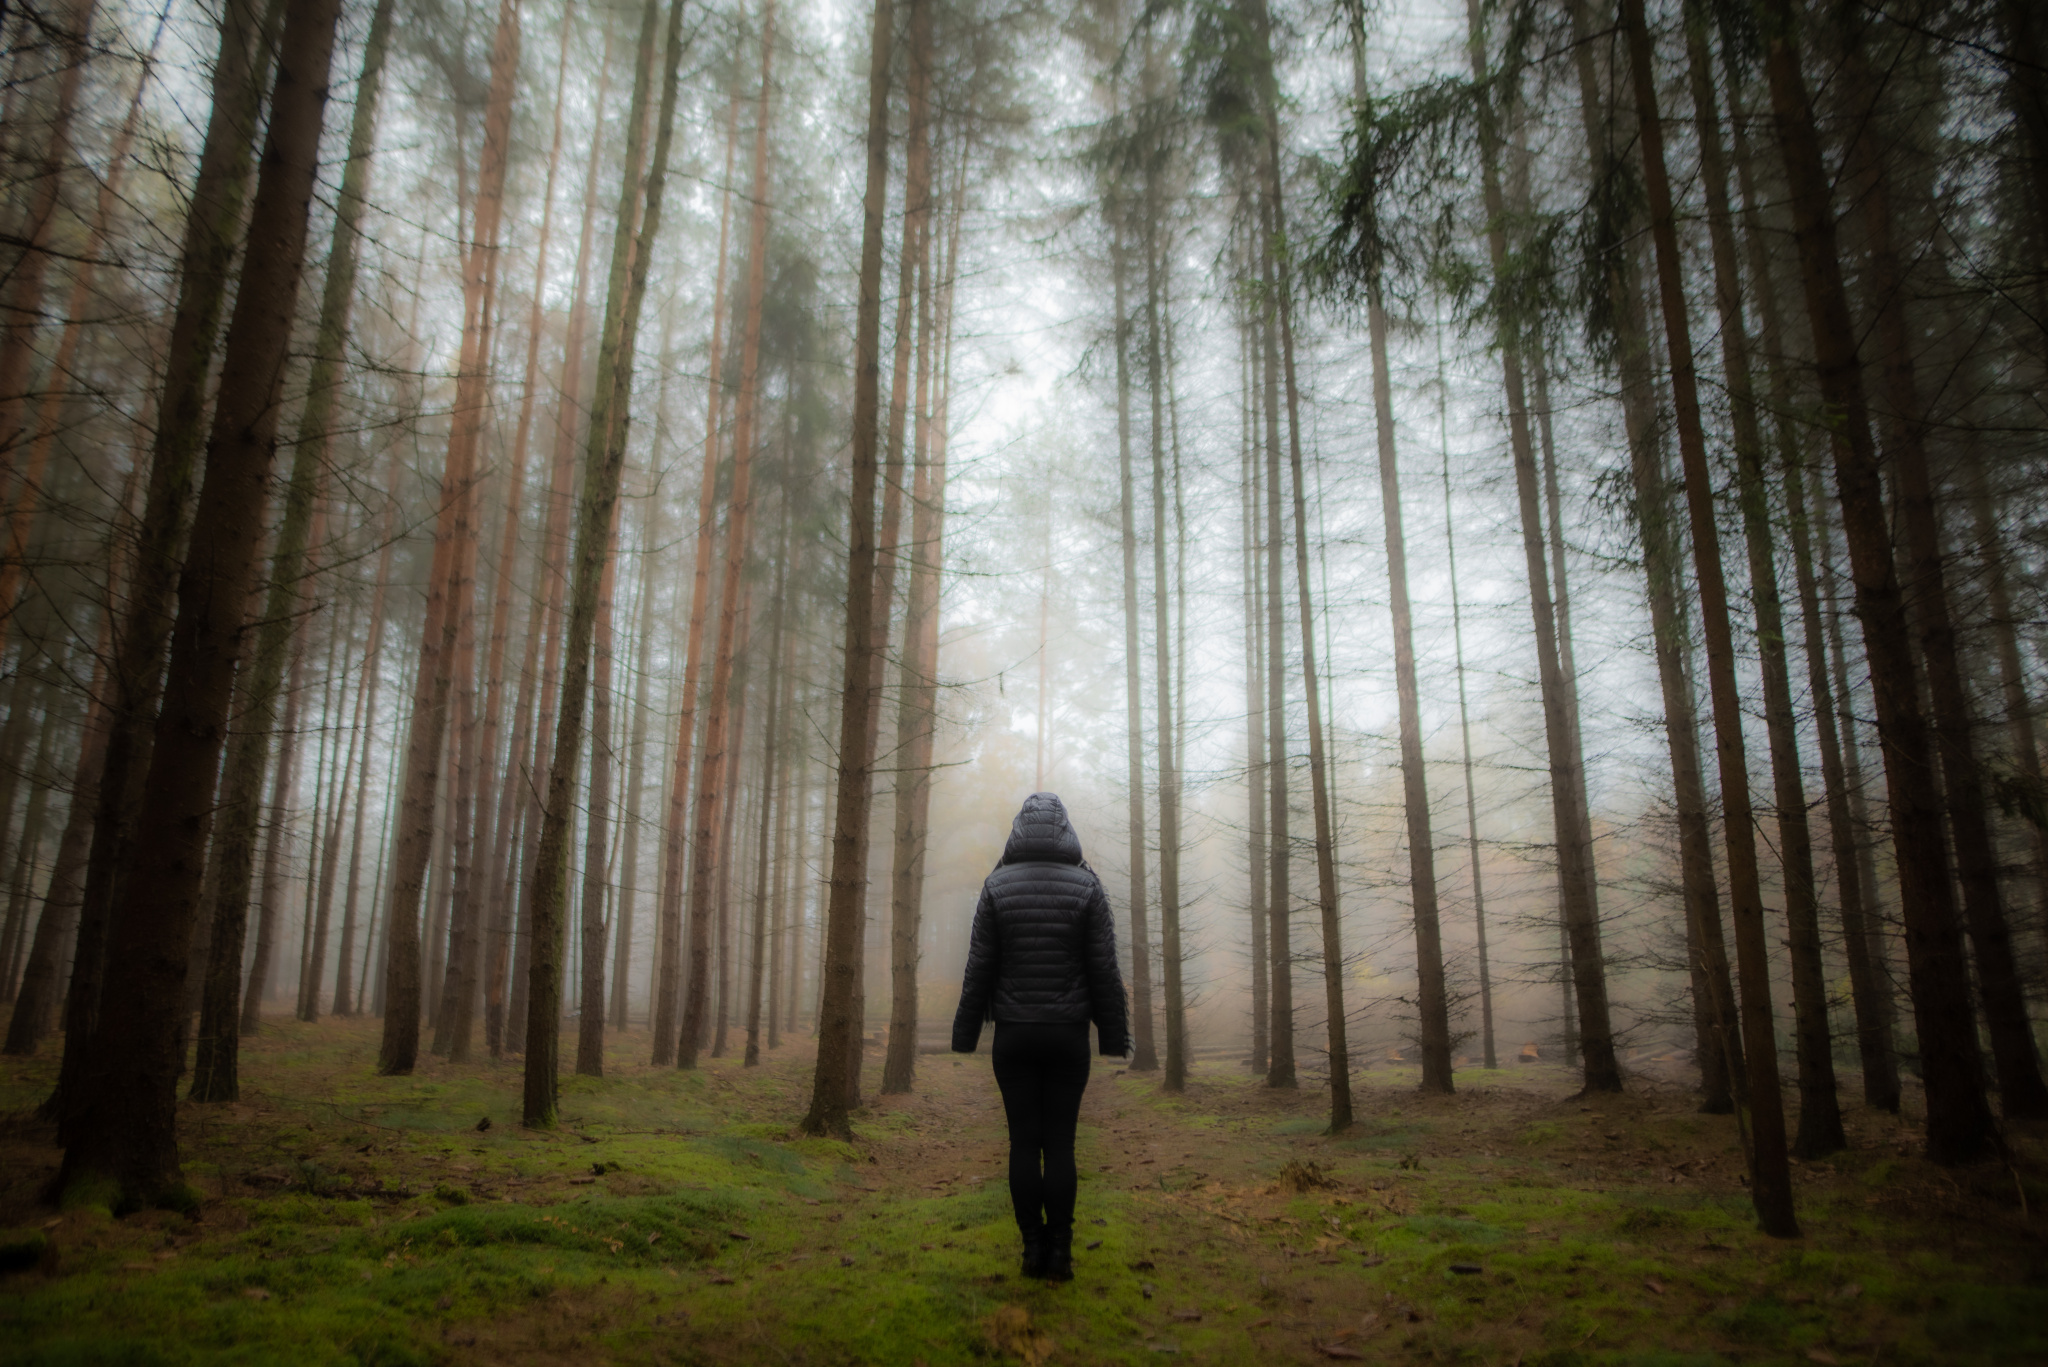 6 Edits You'll Do Better to Avoid - person in a forest